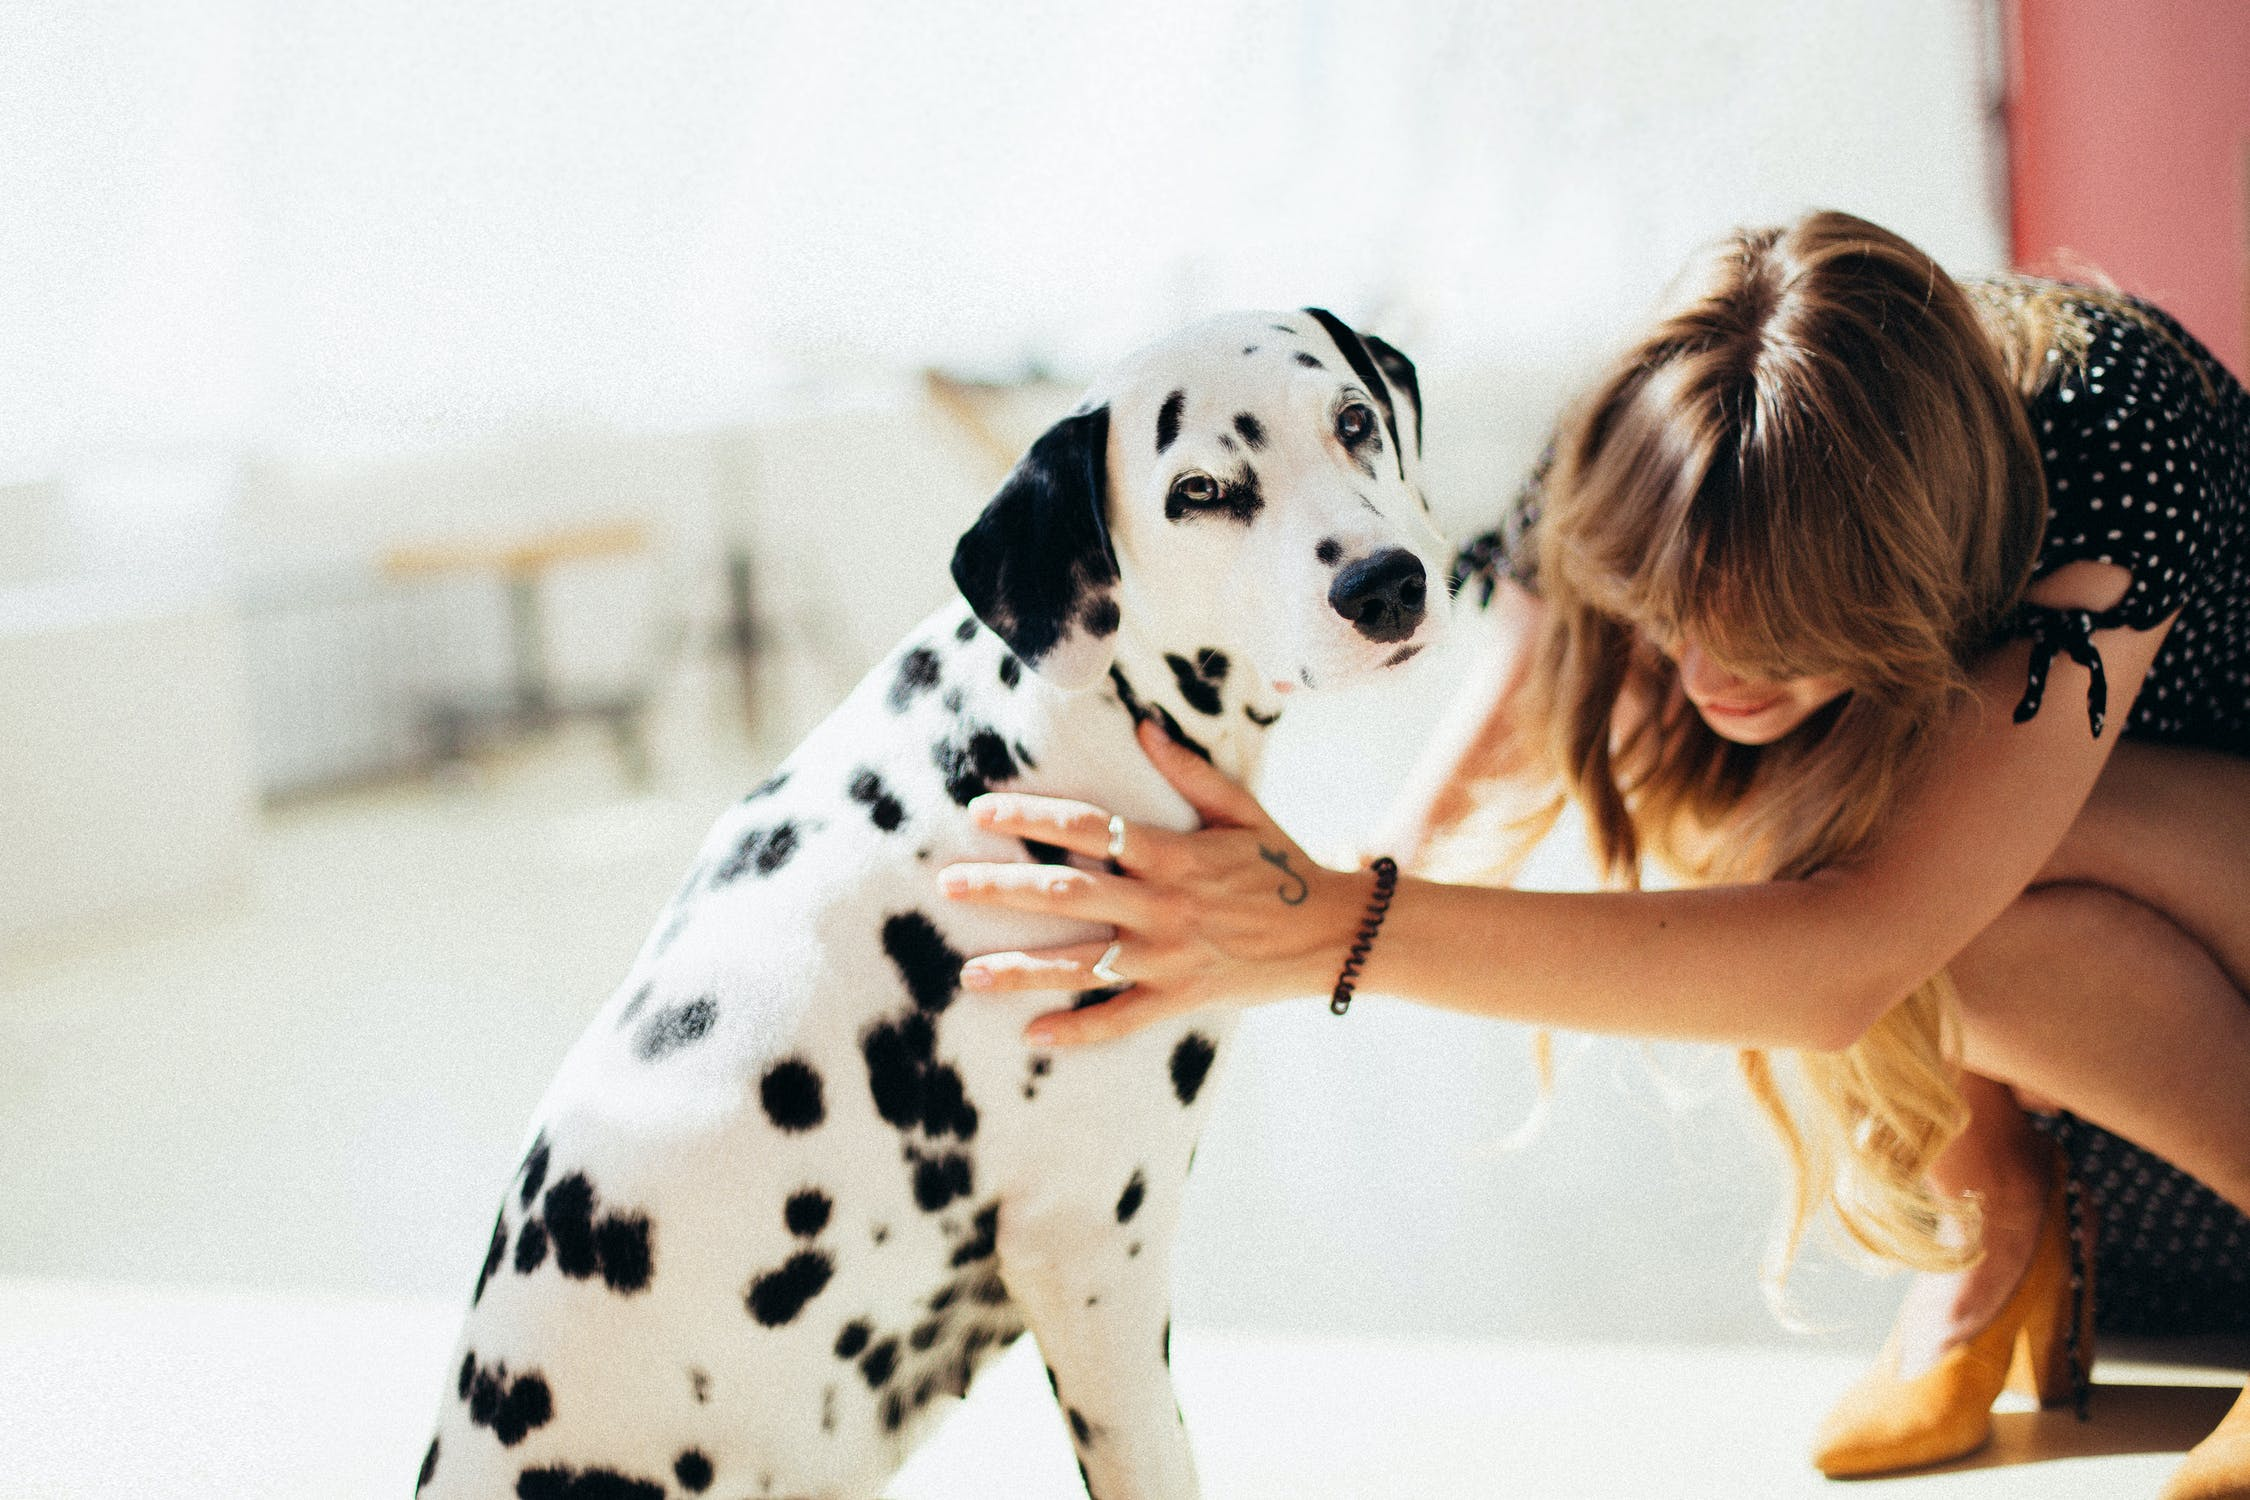 Woman interacting with Dalmation